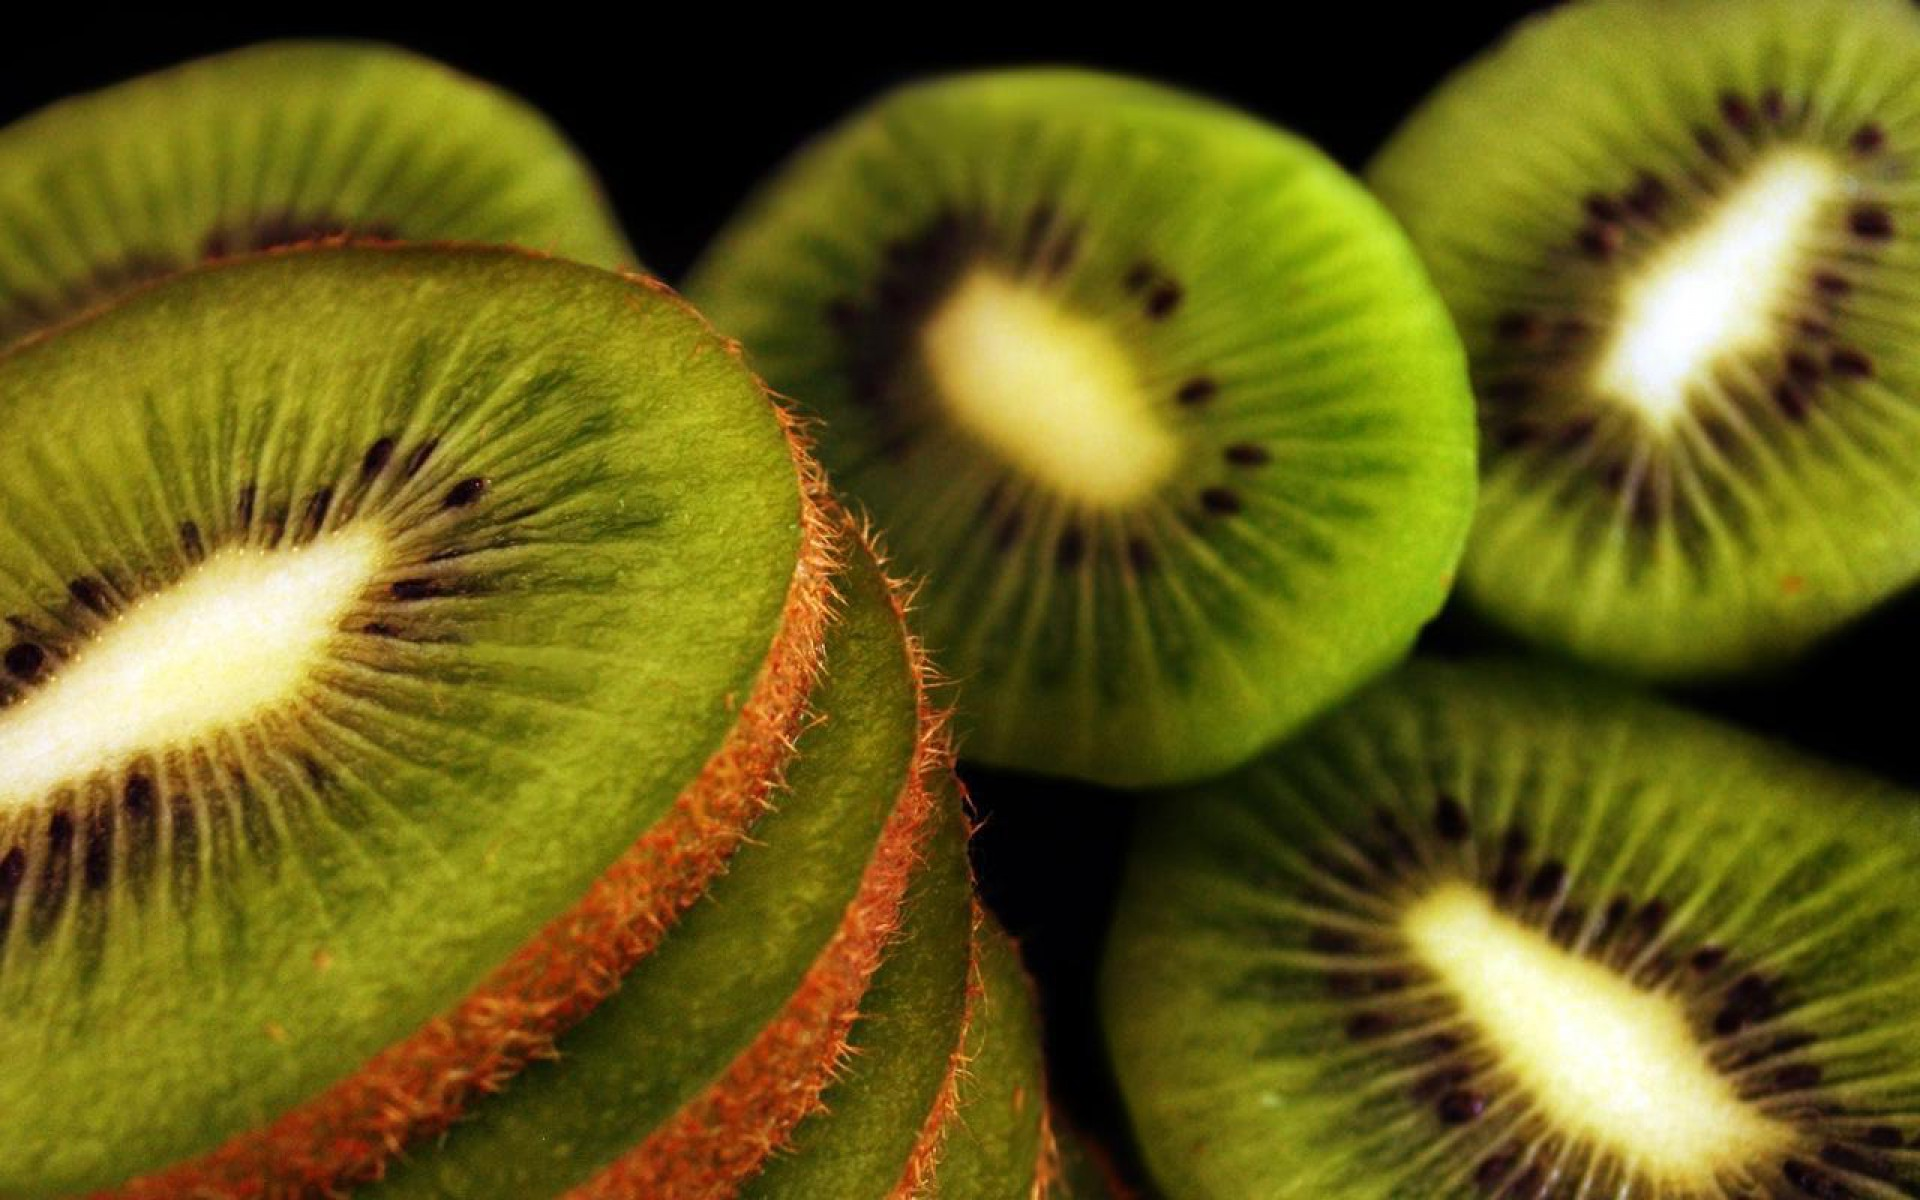 June 2, 2014 - 1920x1200 px Kiwi Desktop Wallpapers